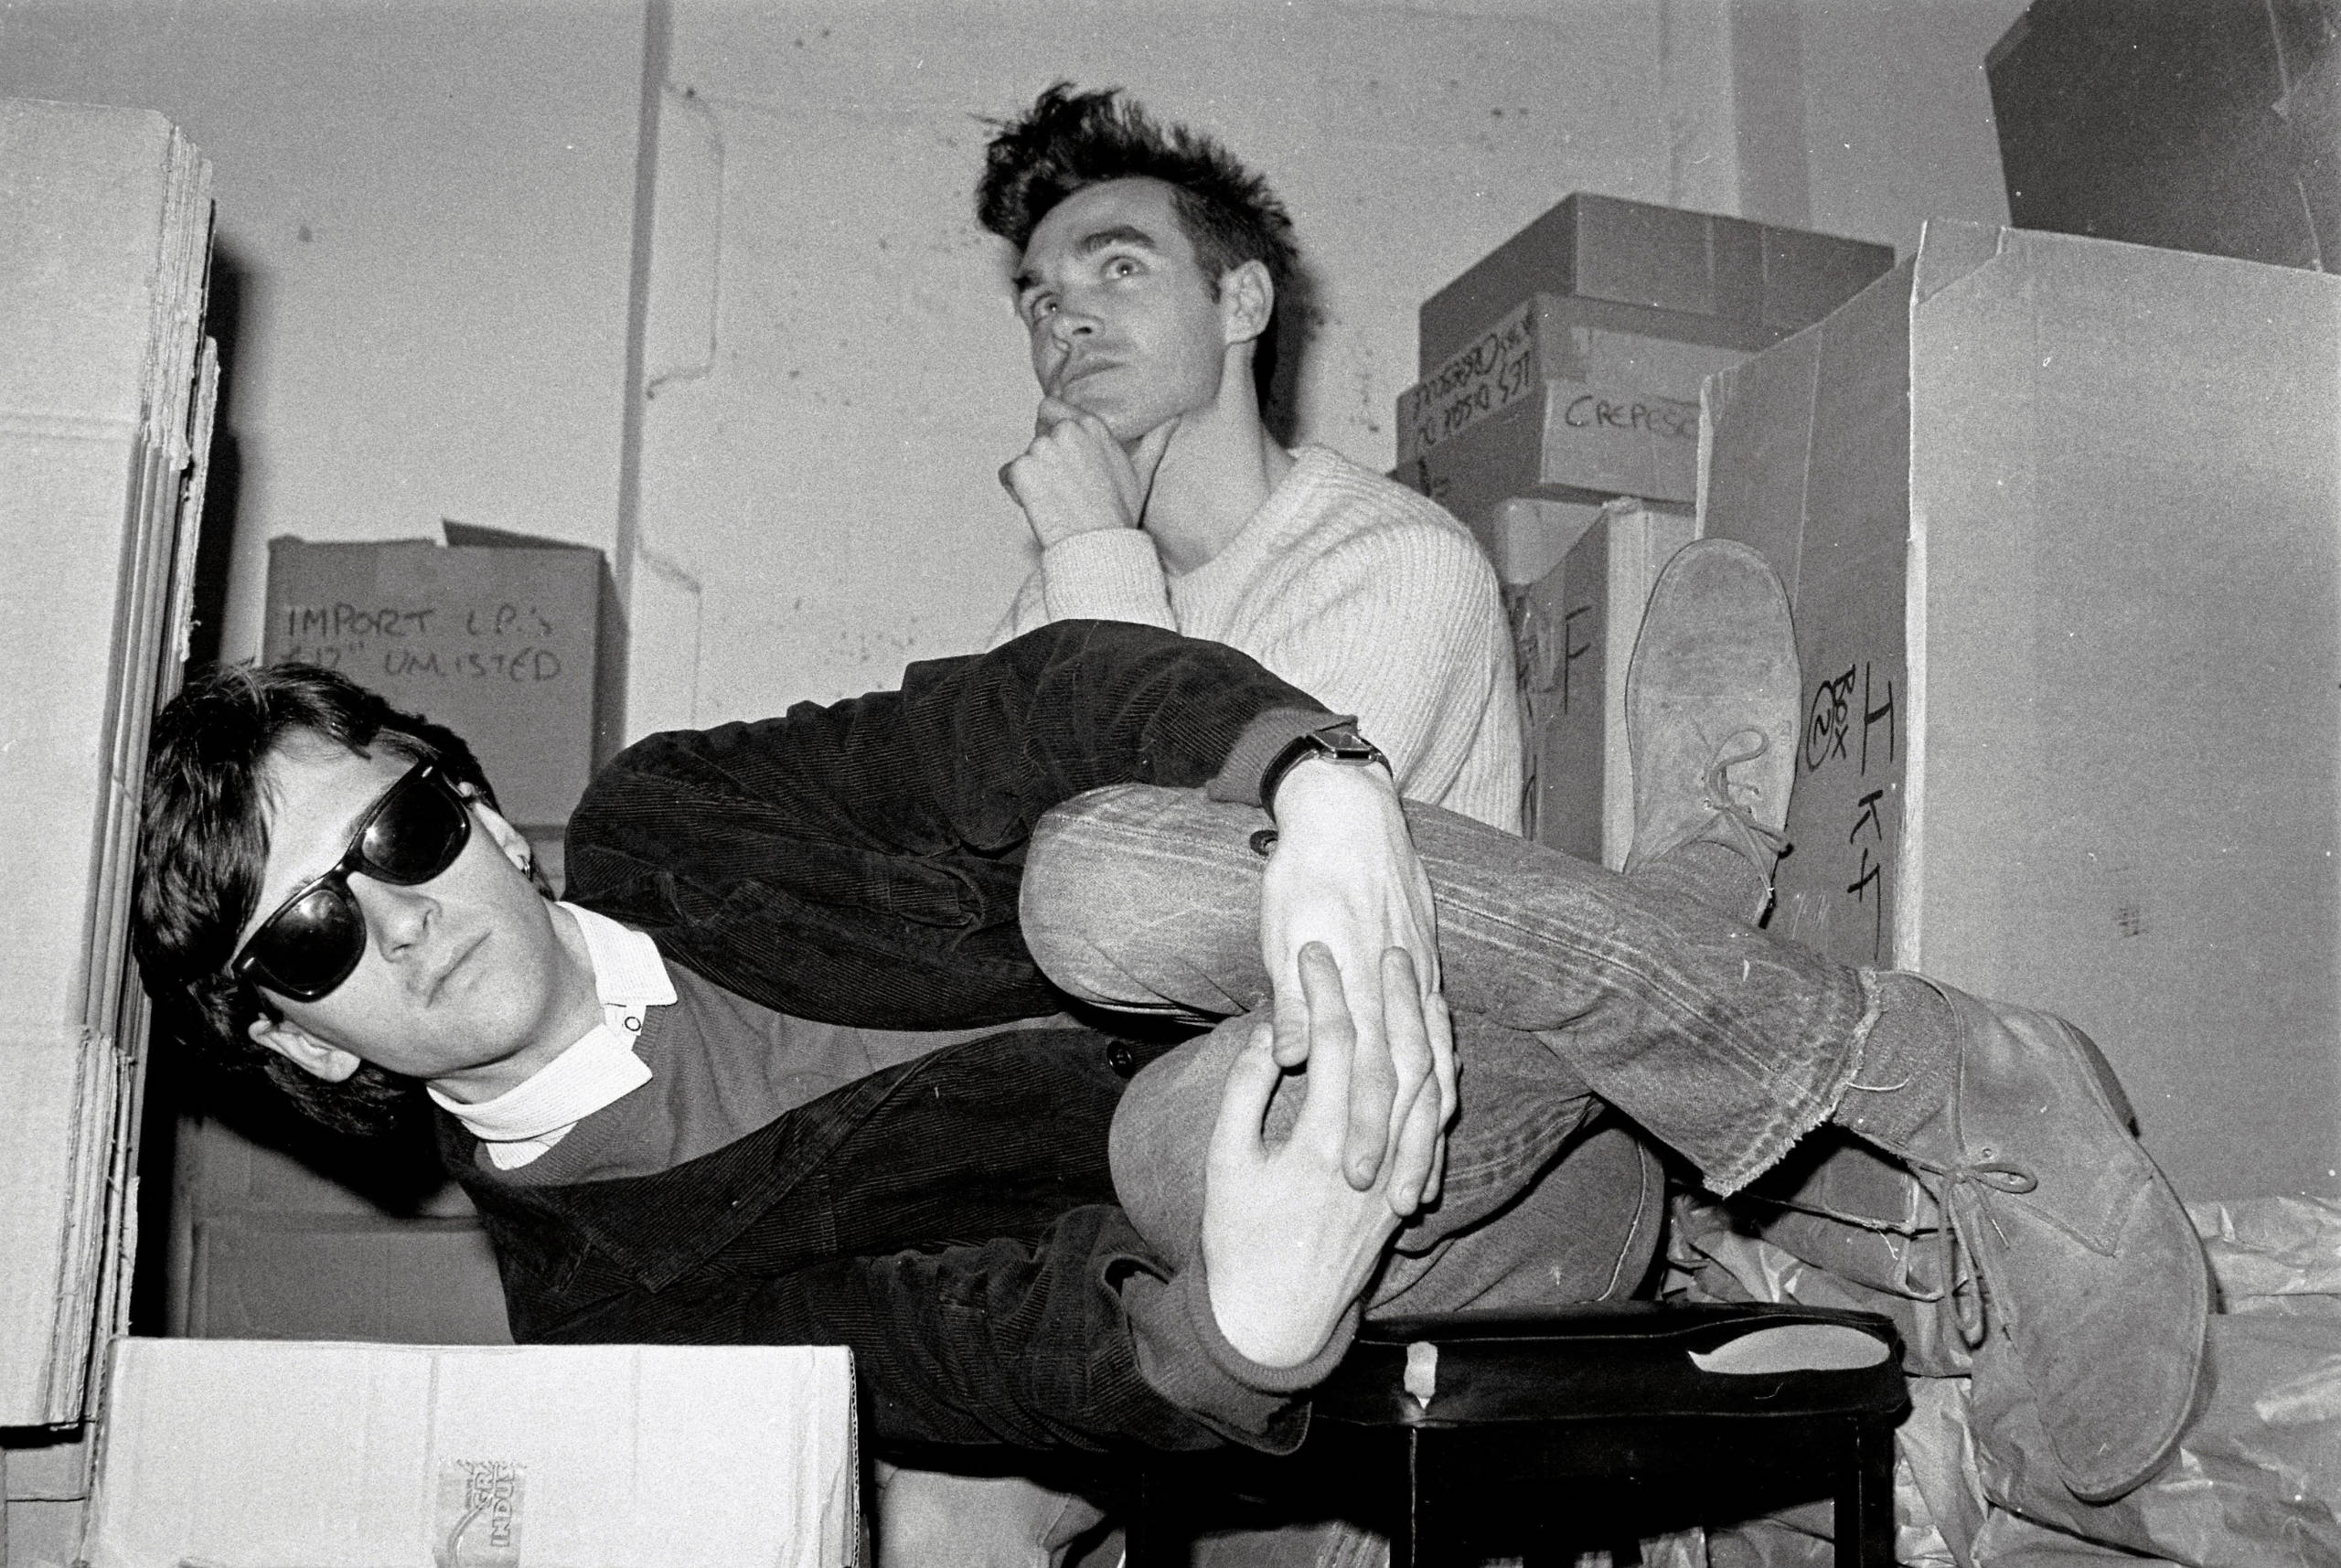 Marr (left) and Morrissey from The Smiths pose together in the store room of Rough Trade records in London, January 1983.